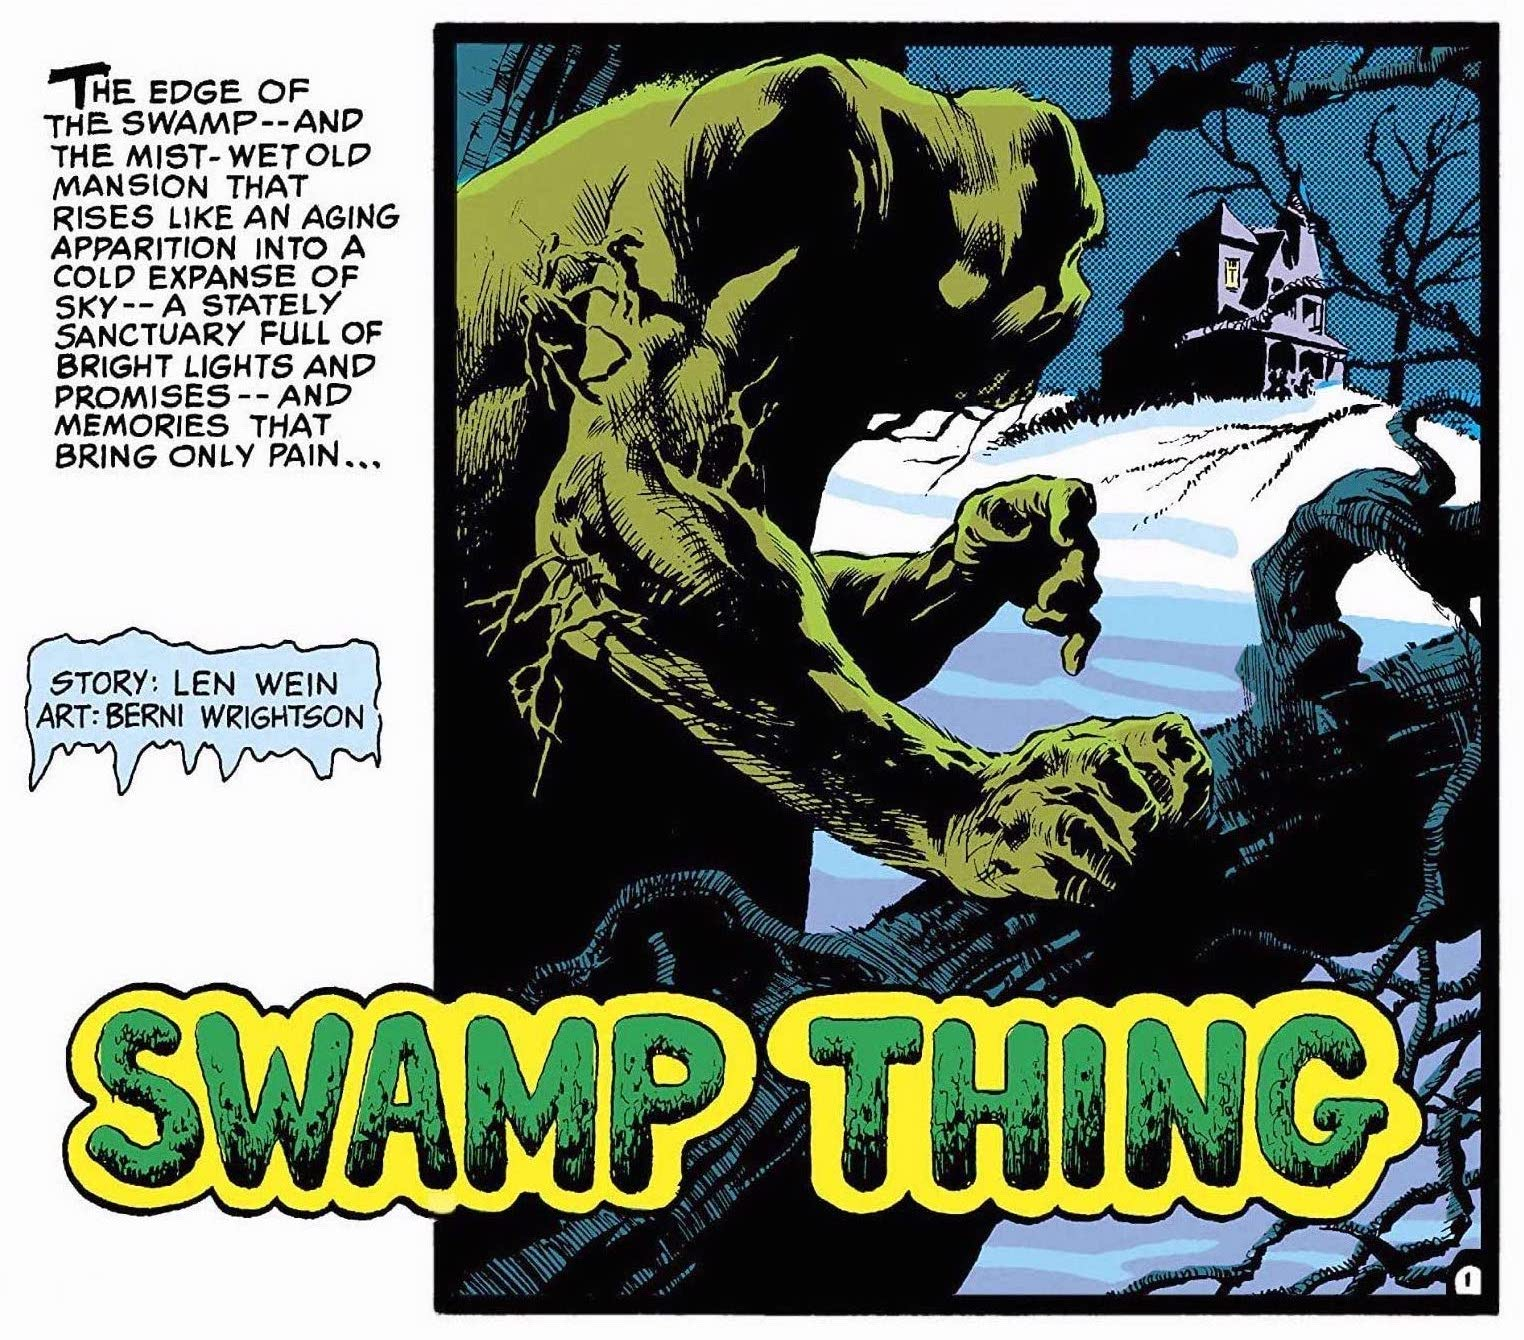 Swamp Thing lurking by a tree, gazing at house on a hill